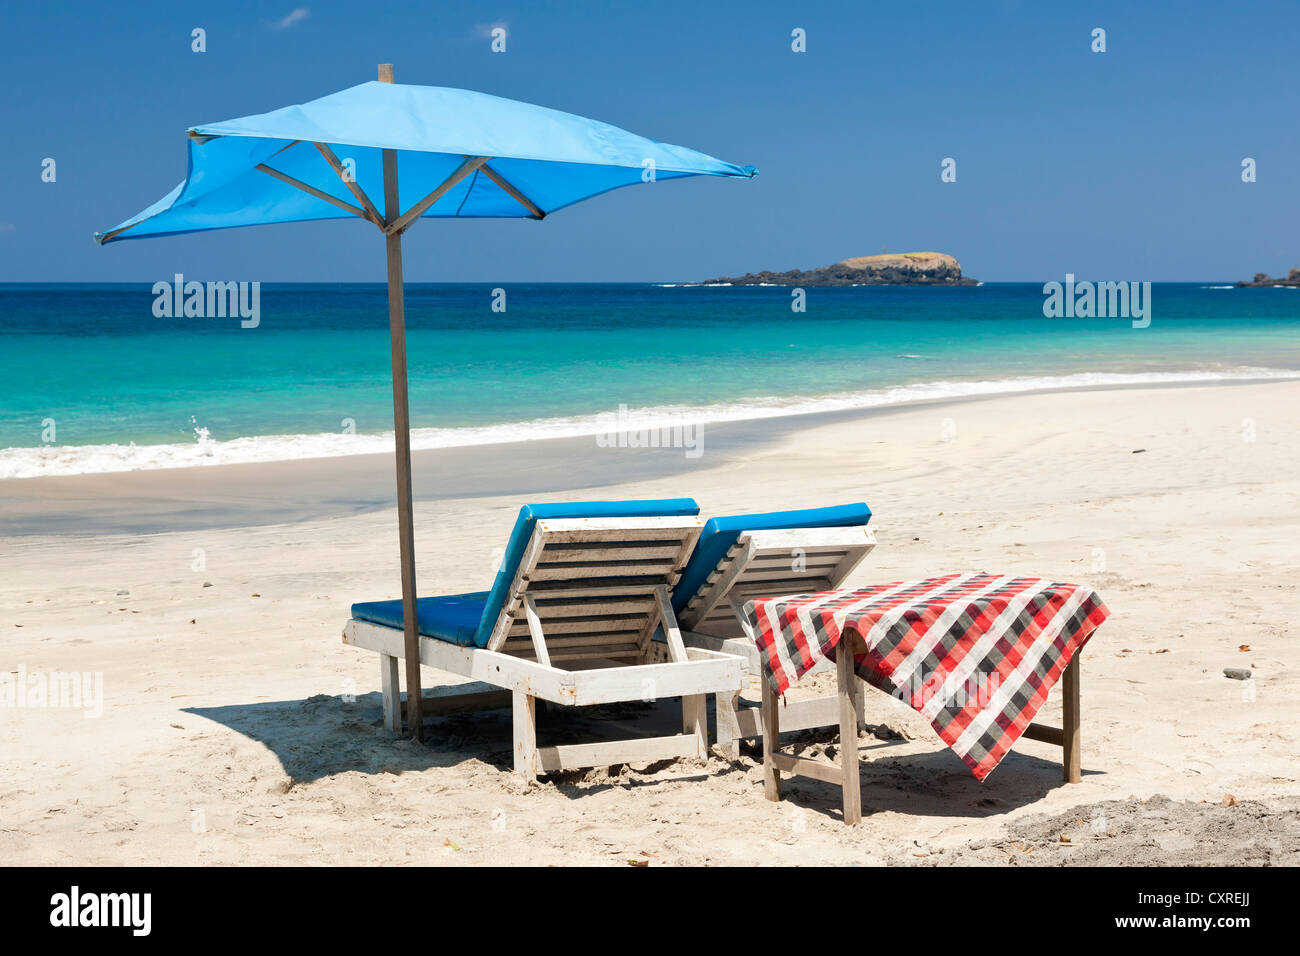 Sunloungers and a parasol at the beach, Pasir Putih or White Sand Beach, east of Candi Dasa, East Bali, Bali, Indonesia - Stock Image